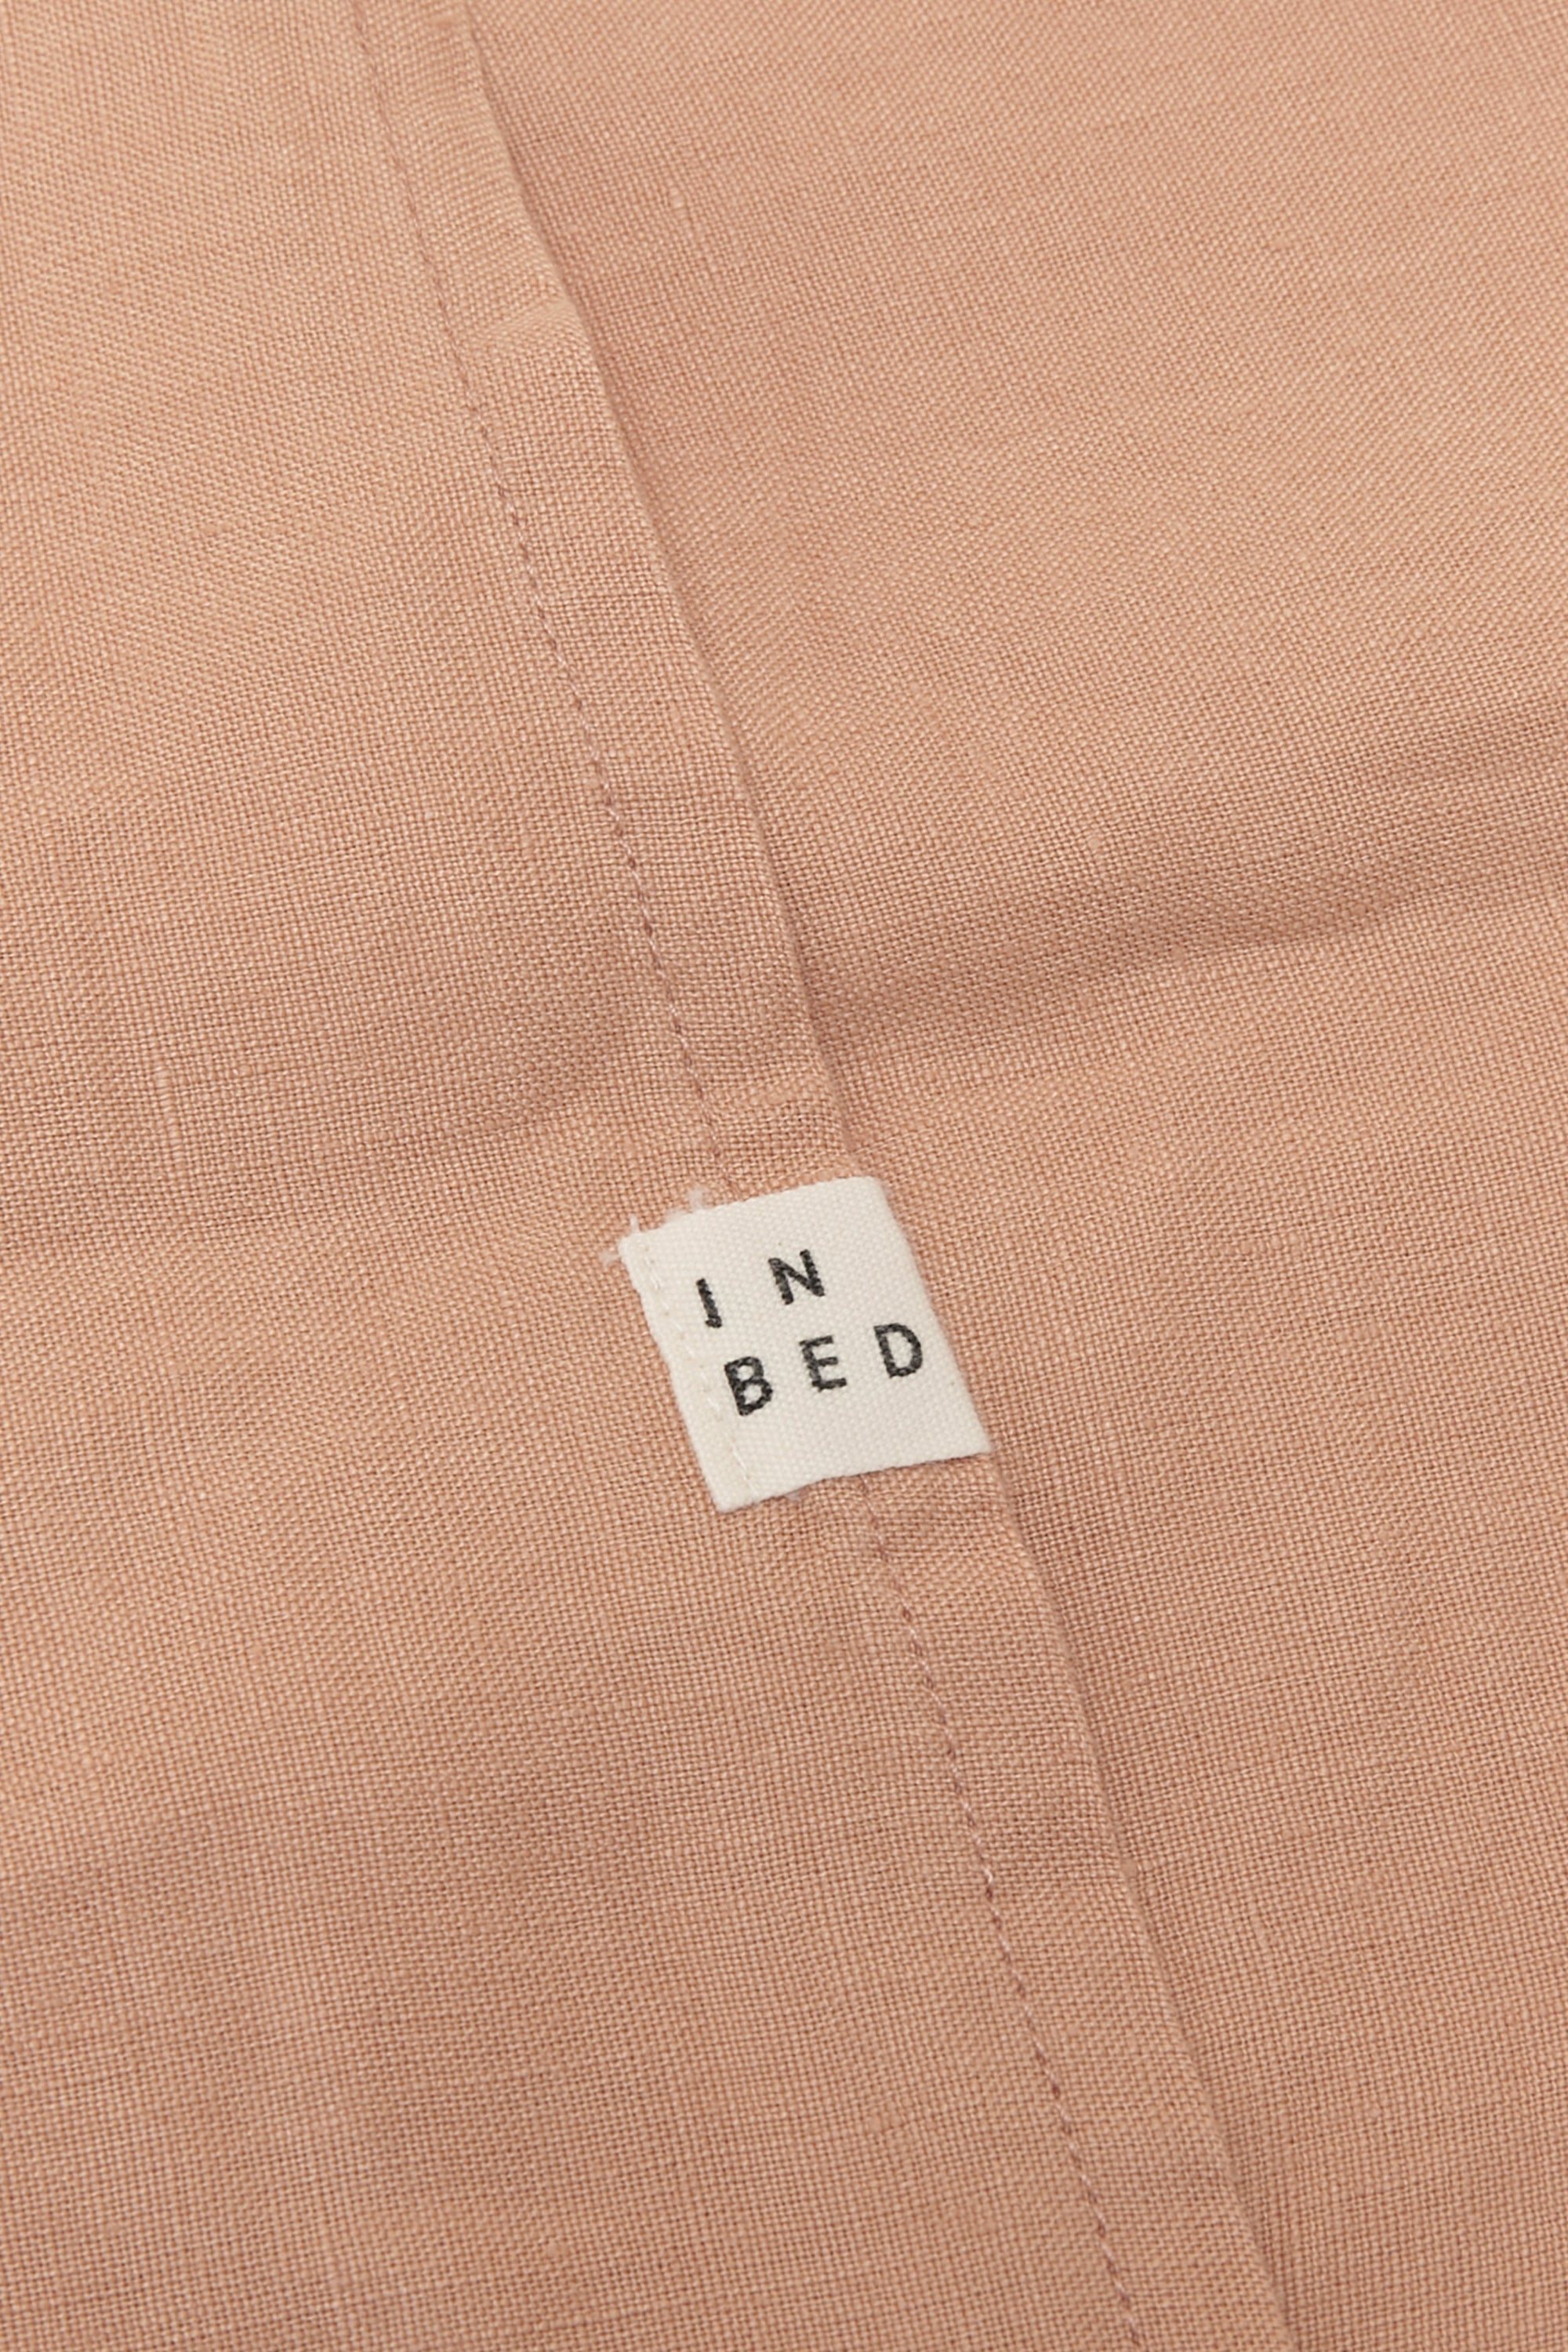 IN BED Linen Pillowslip Set